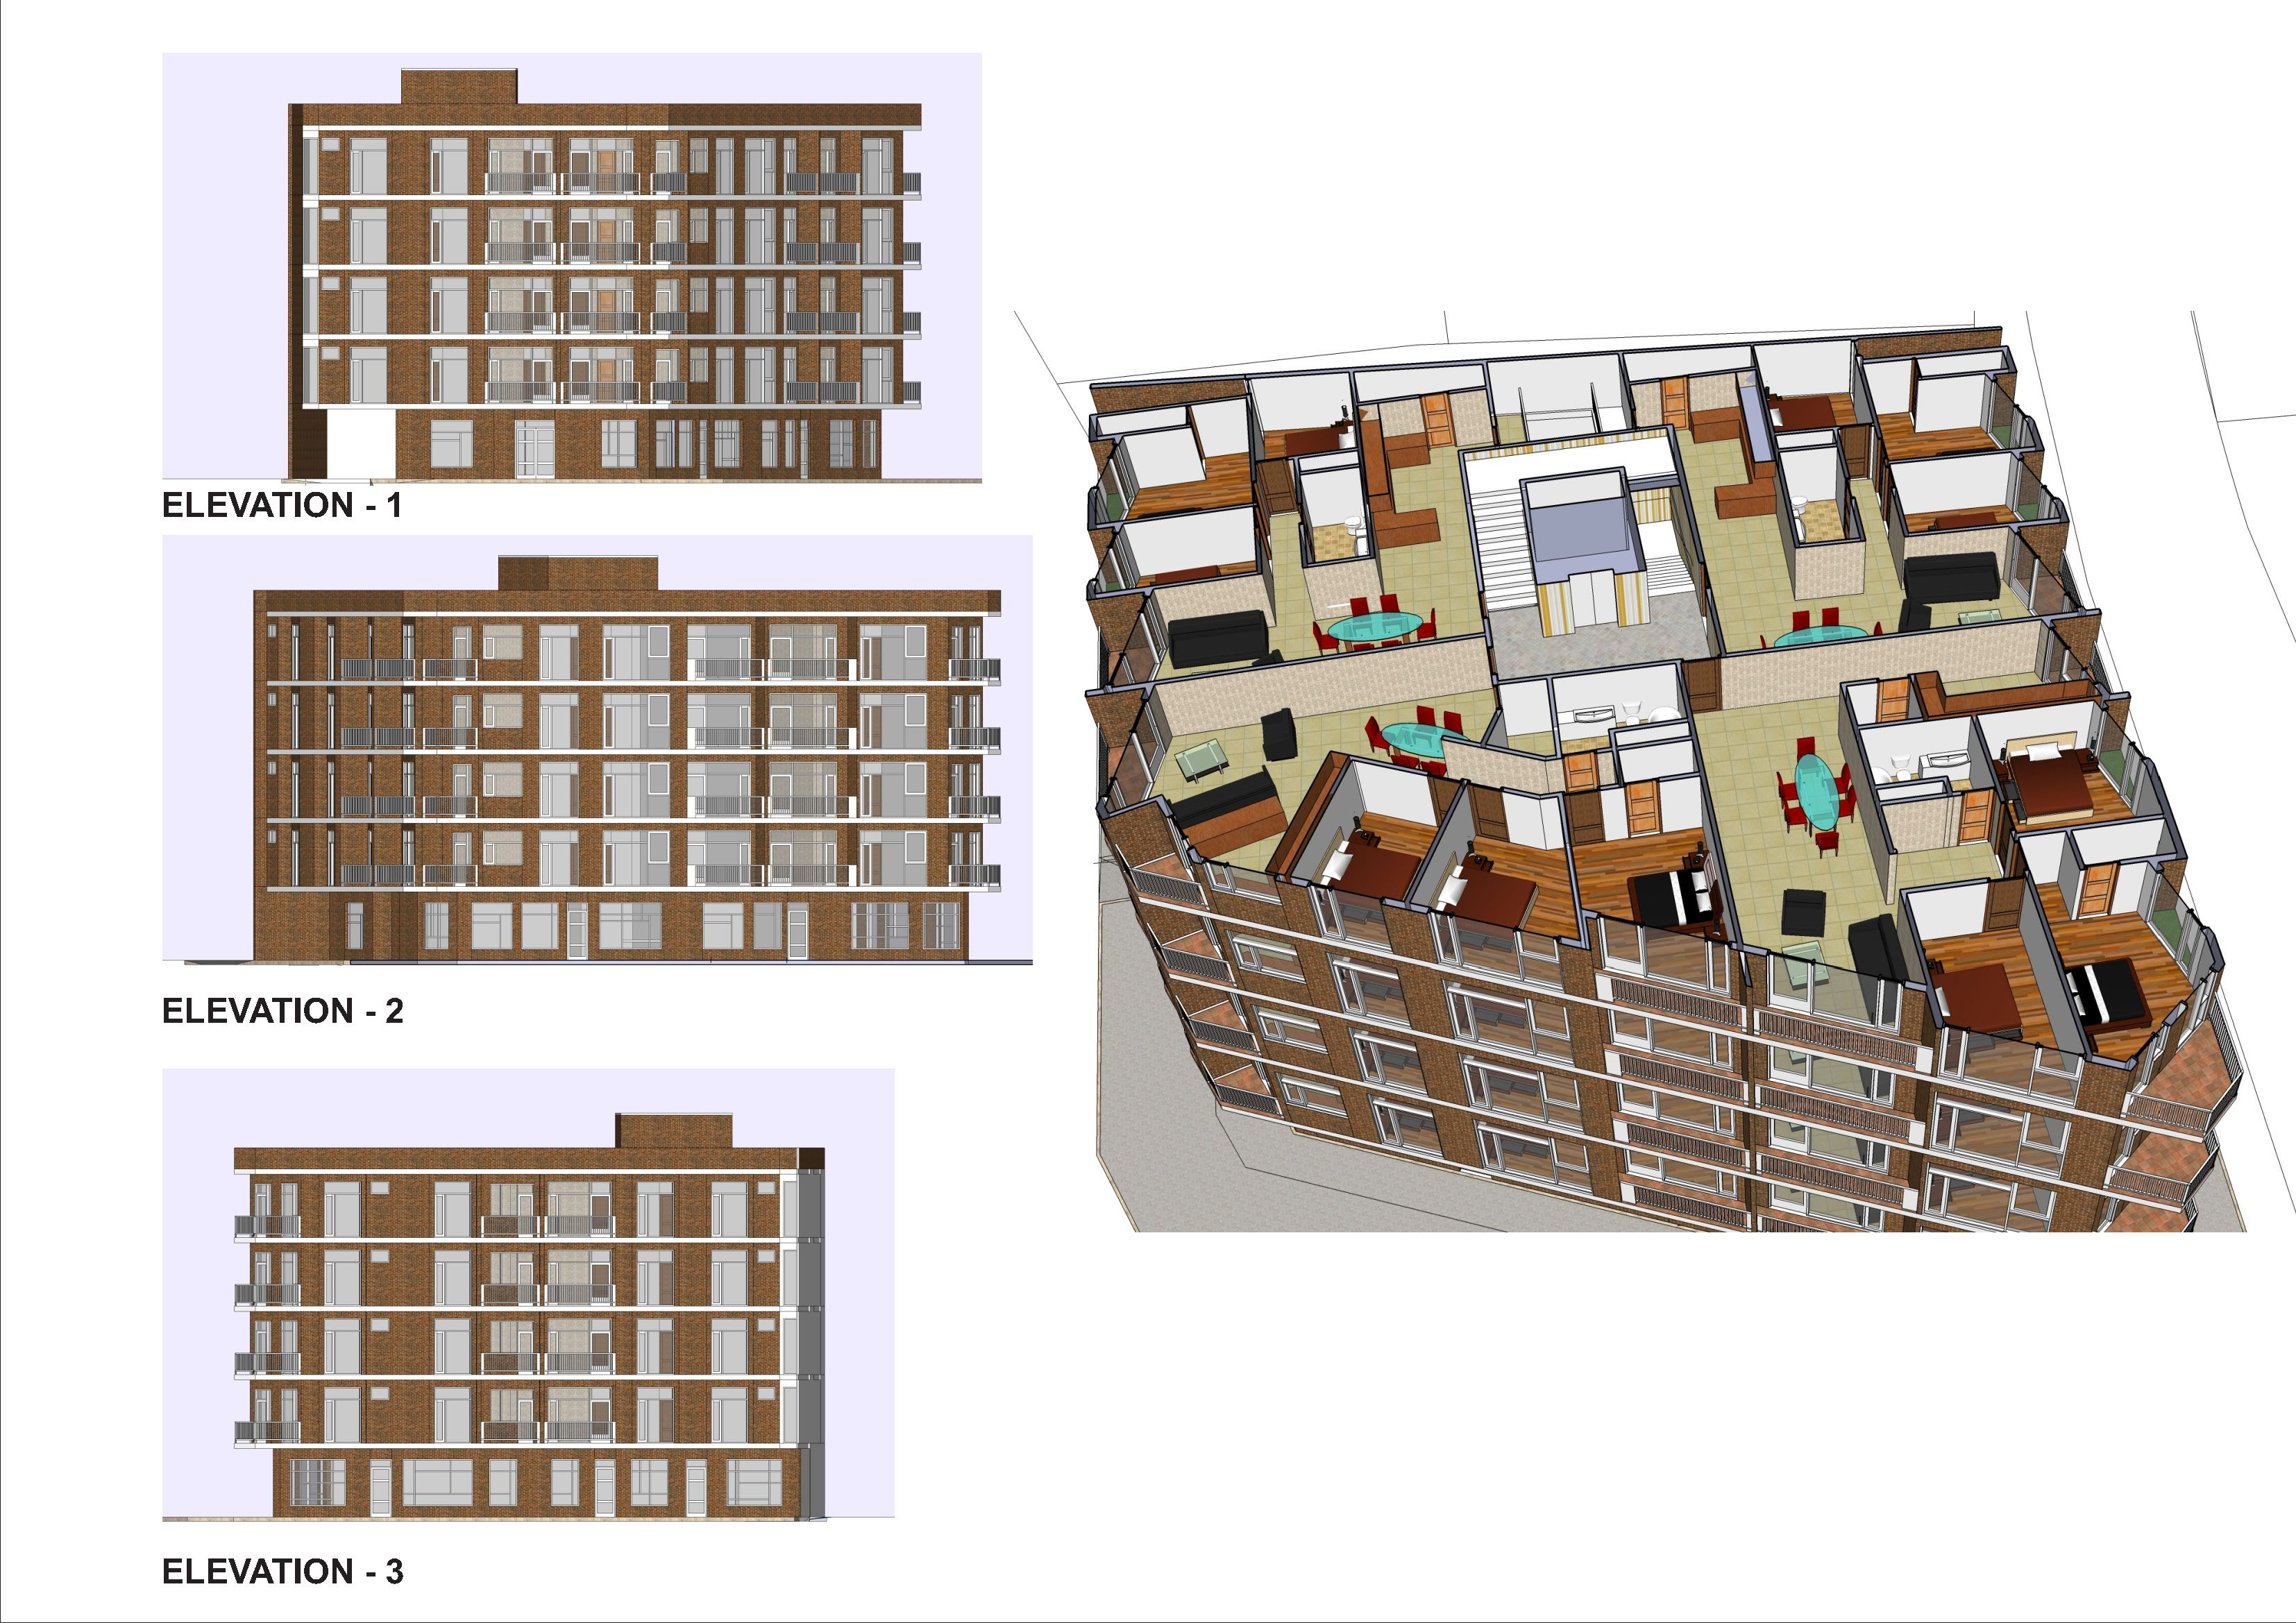 Apartment building plans location aksaray turkey new for Residential house plans and designs